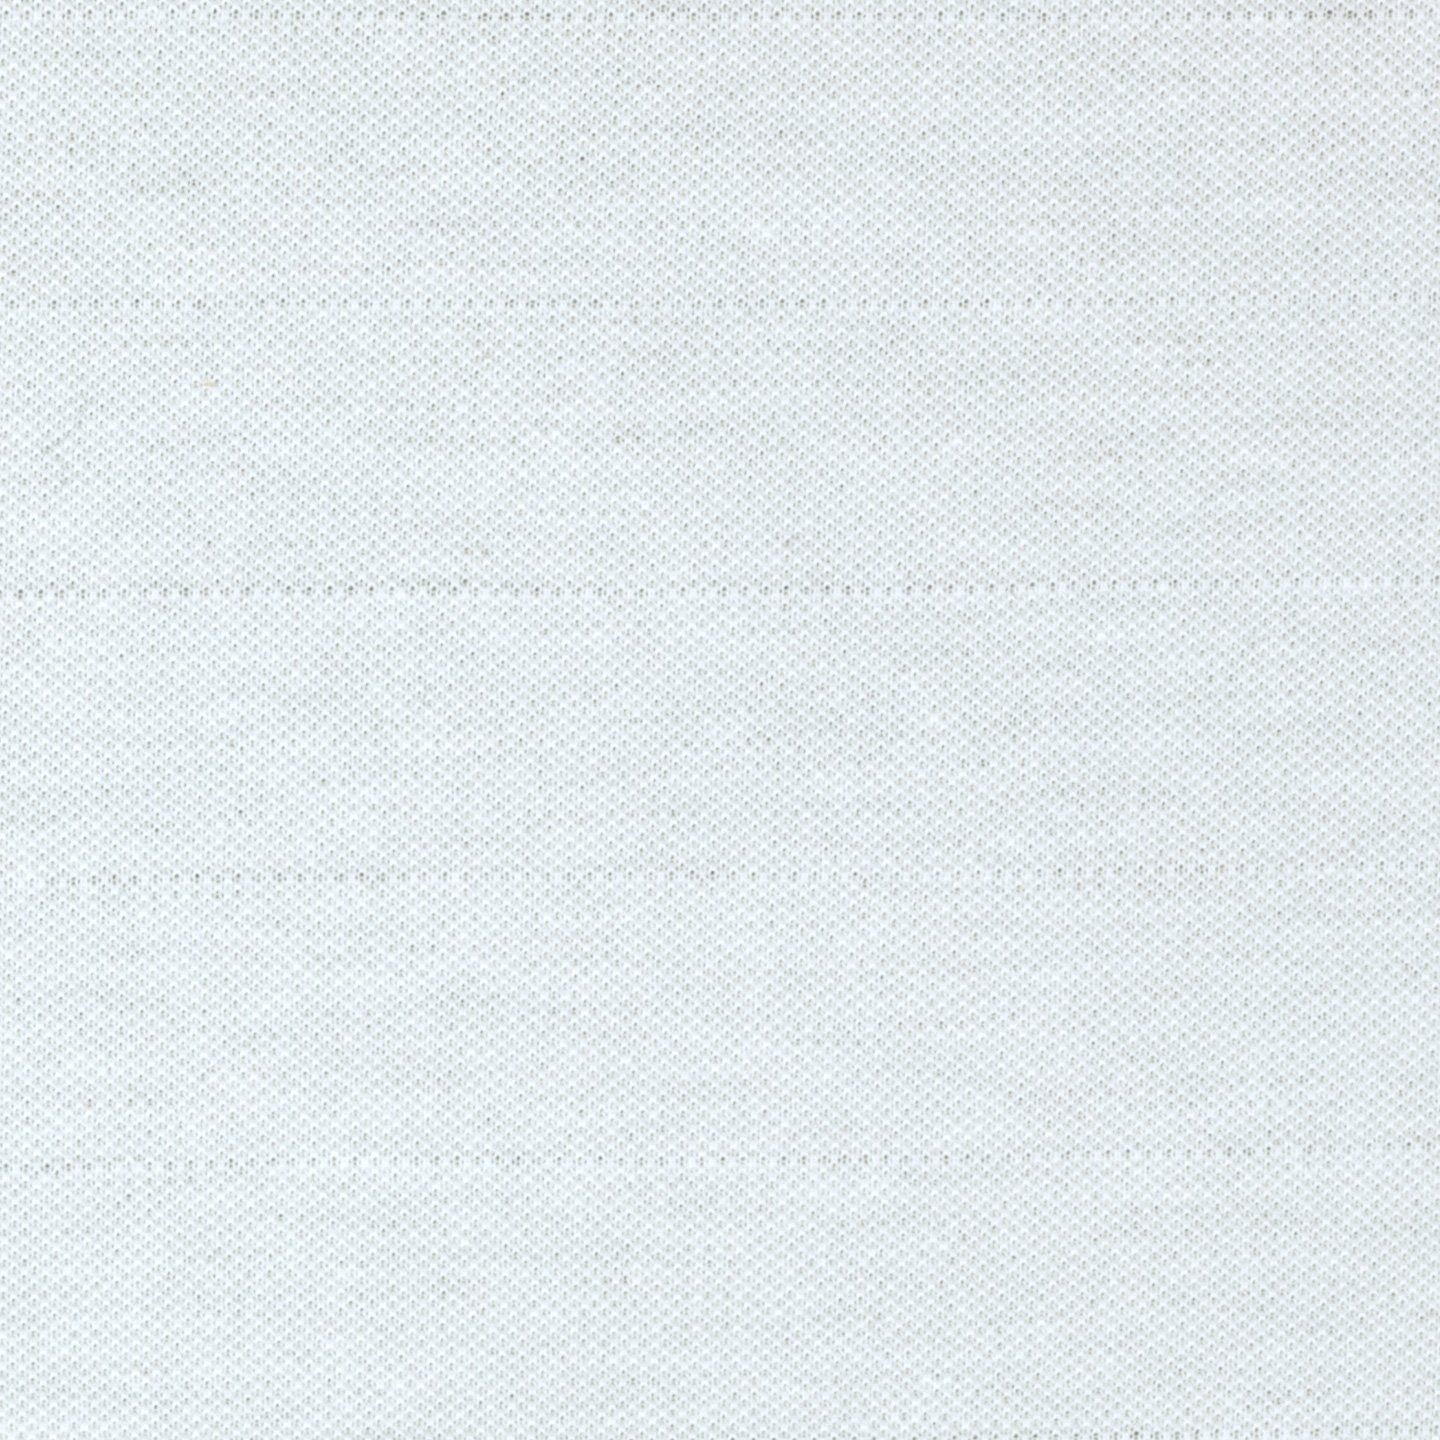 Polyester Pique Knit White Fabric